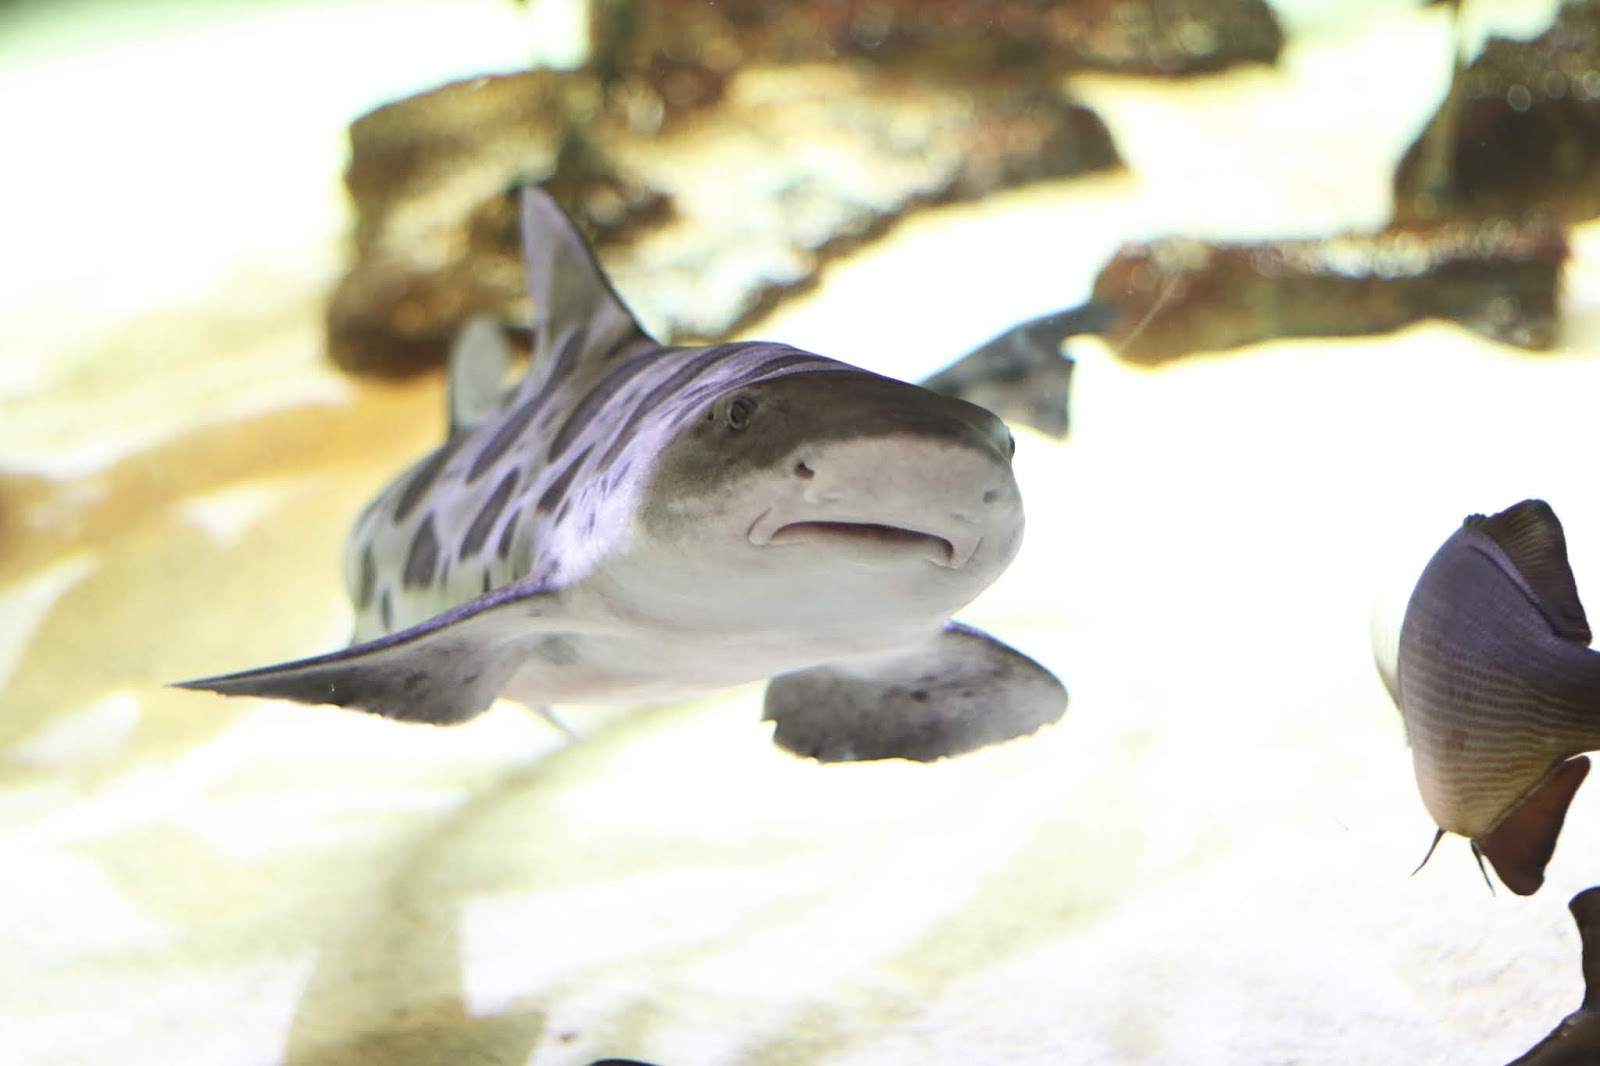 Shark, baby shark, tiny shark, Sharks at Shedd Aquarium Chicago